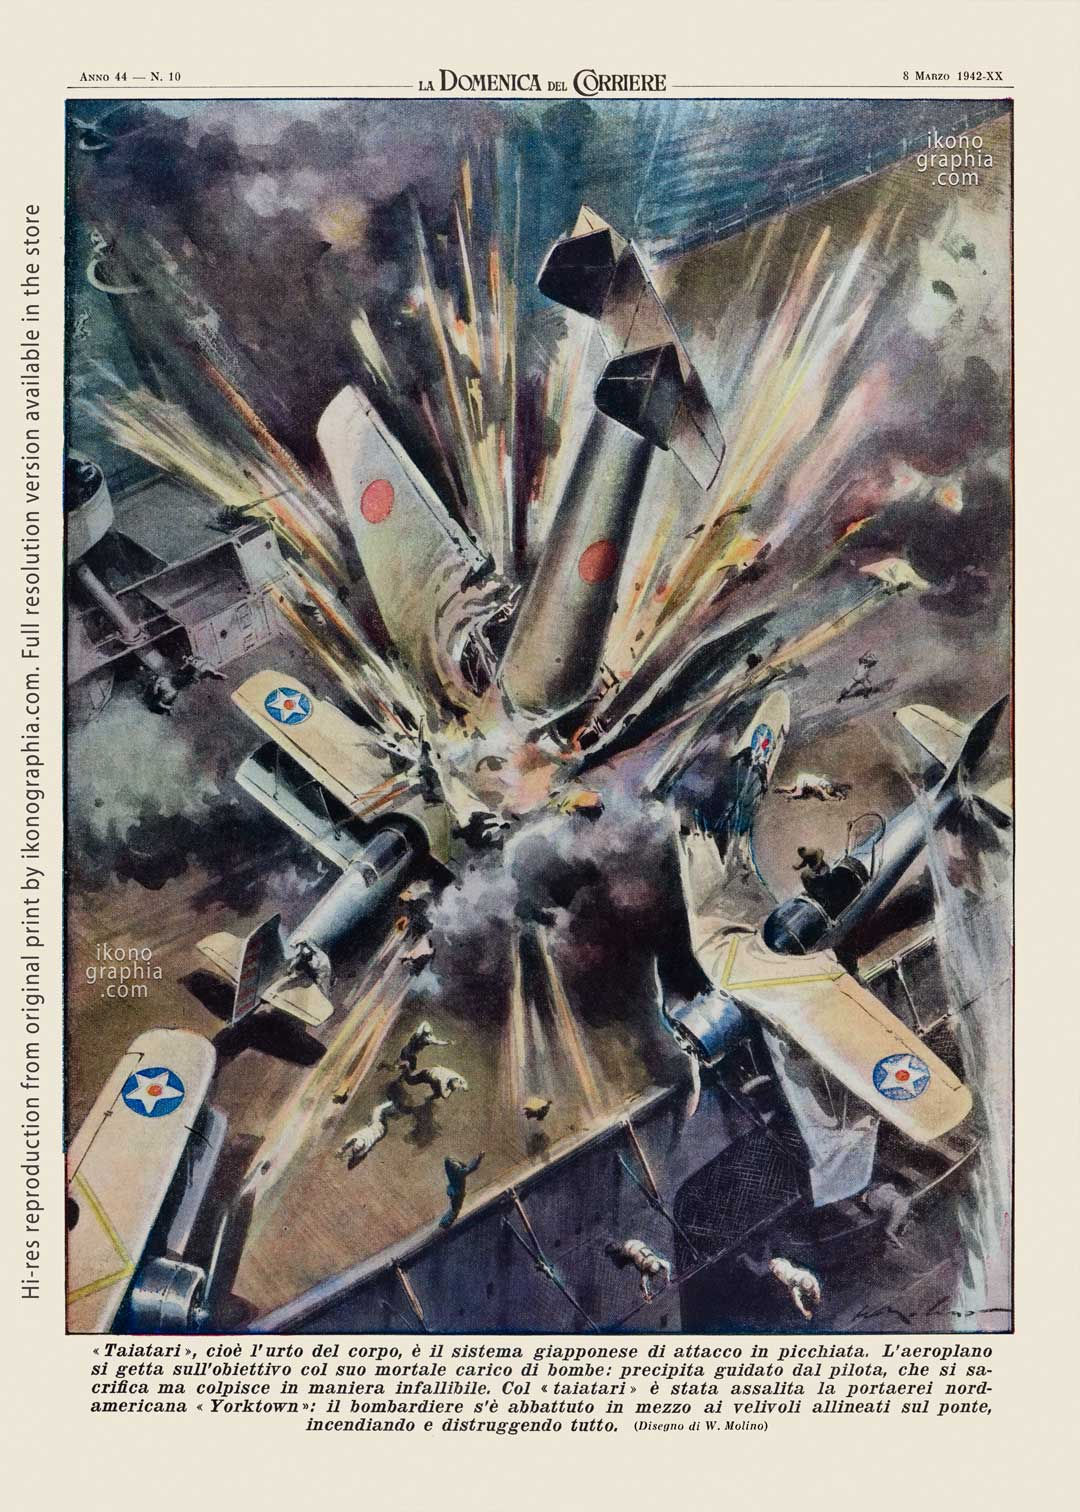 """A plate by Walter Molino, Beltrame's most talented pupil. for """"La Domenica del Corriere. Japanese kamikaze attack on the aircraft carrier Yorktown."""